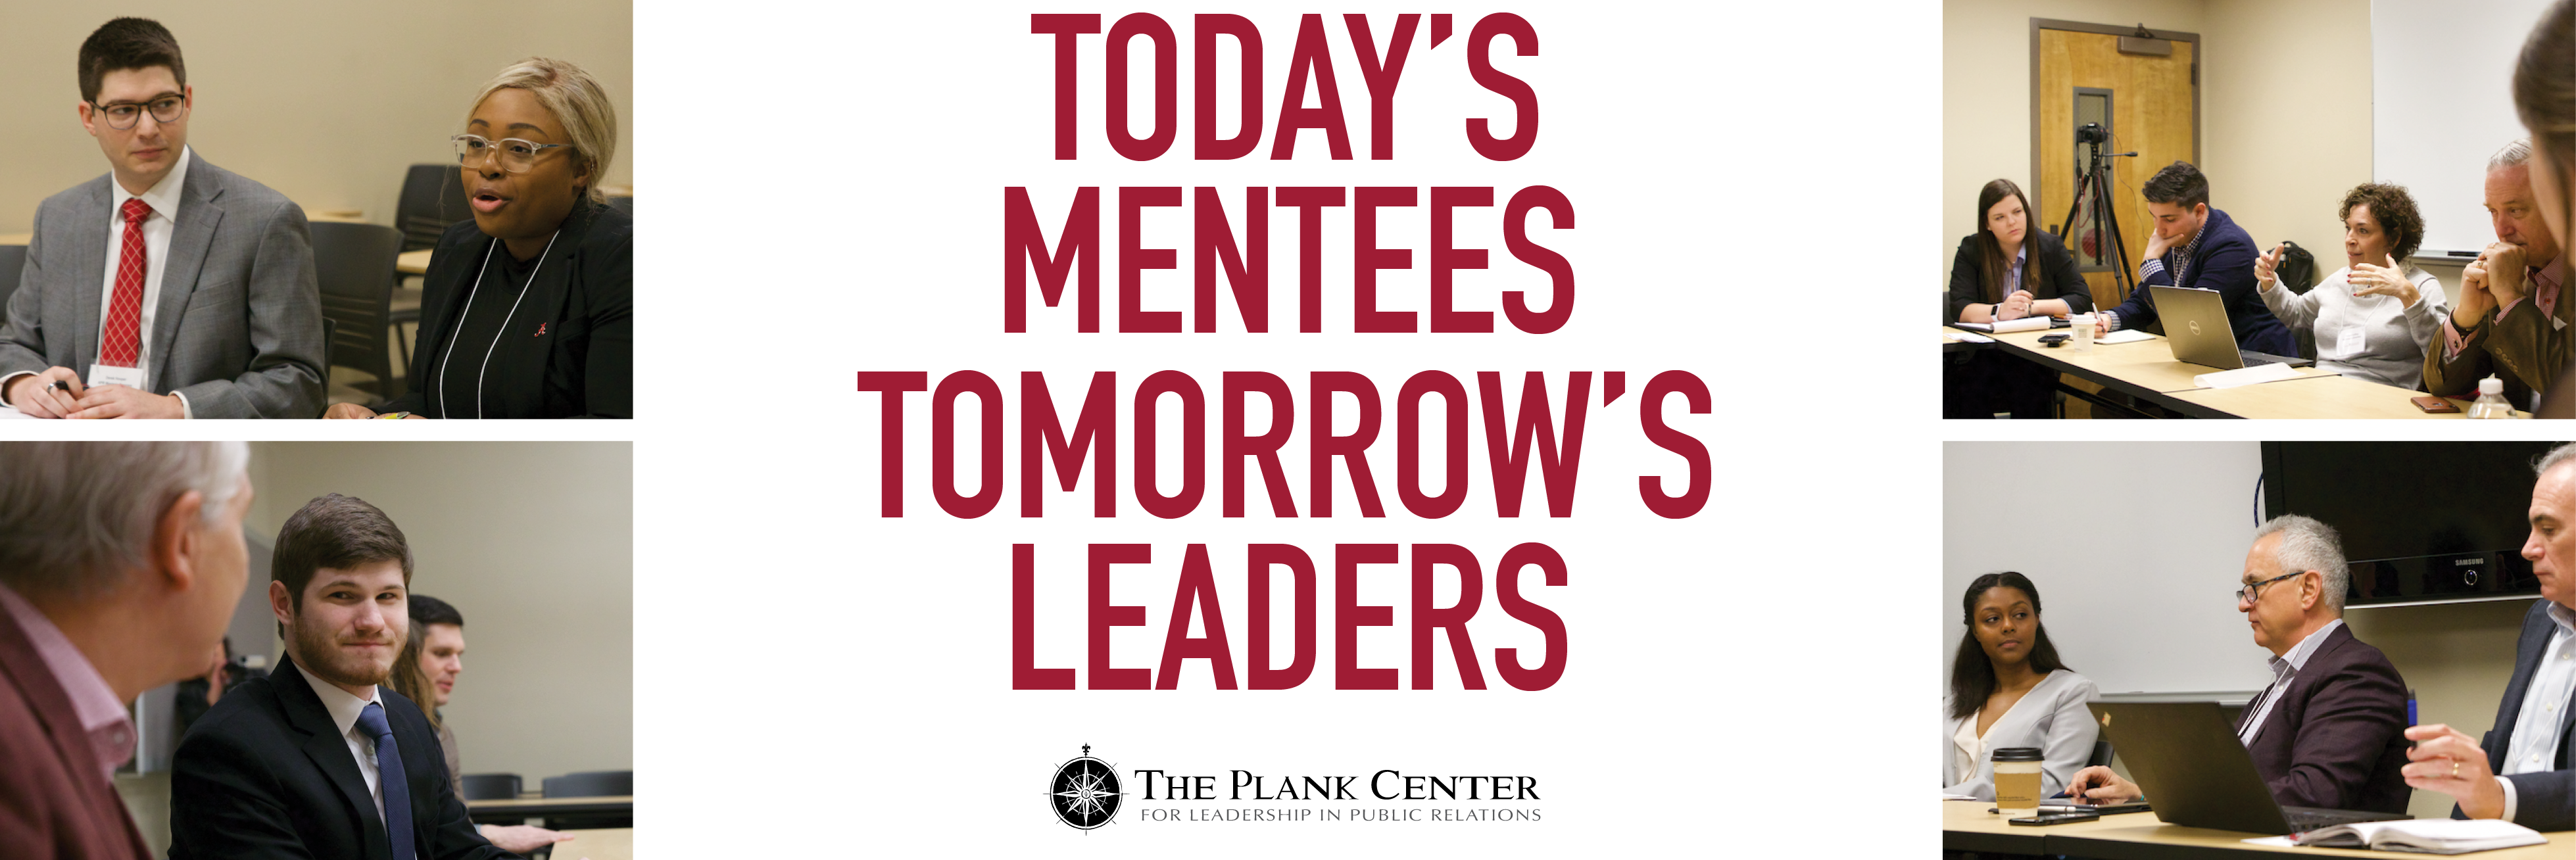 Today's Mentees Tomorrow's Leaders